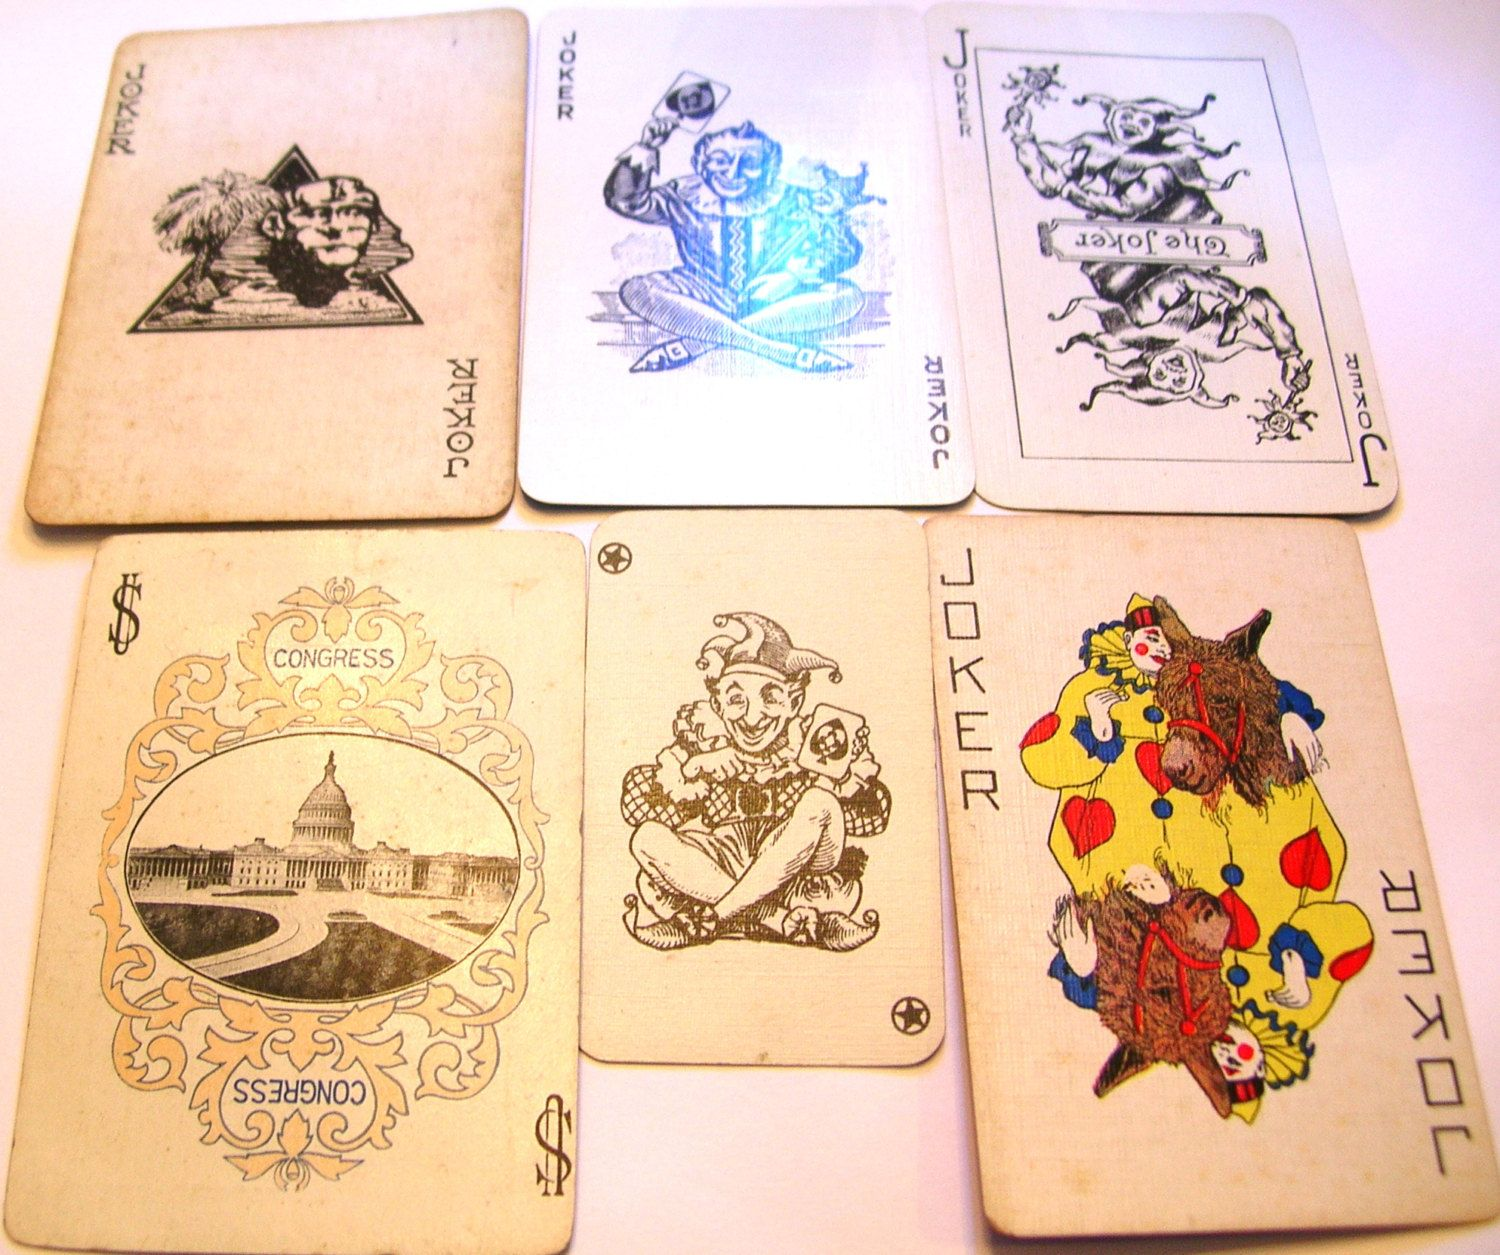 Rare Joker Collection Vintage Playing Etsy Vintage Playing Cards Vintage Collection Paper Crafts